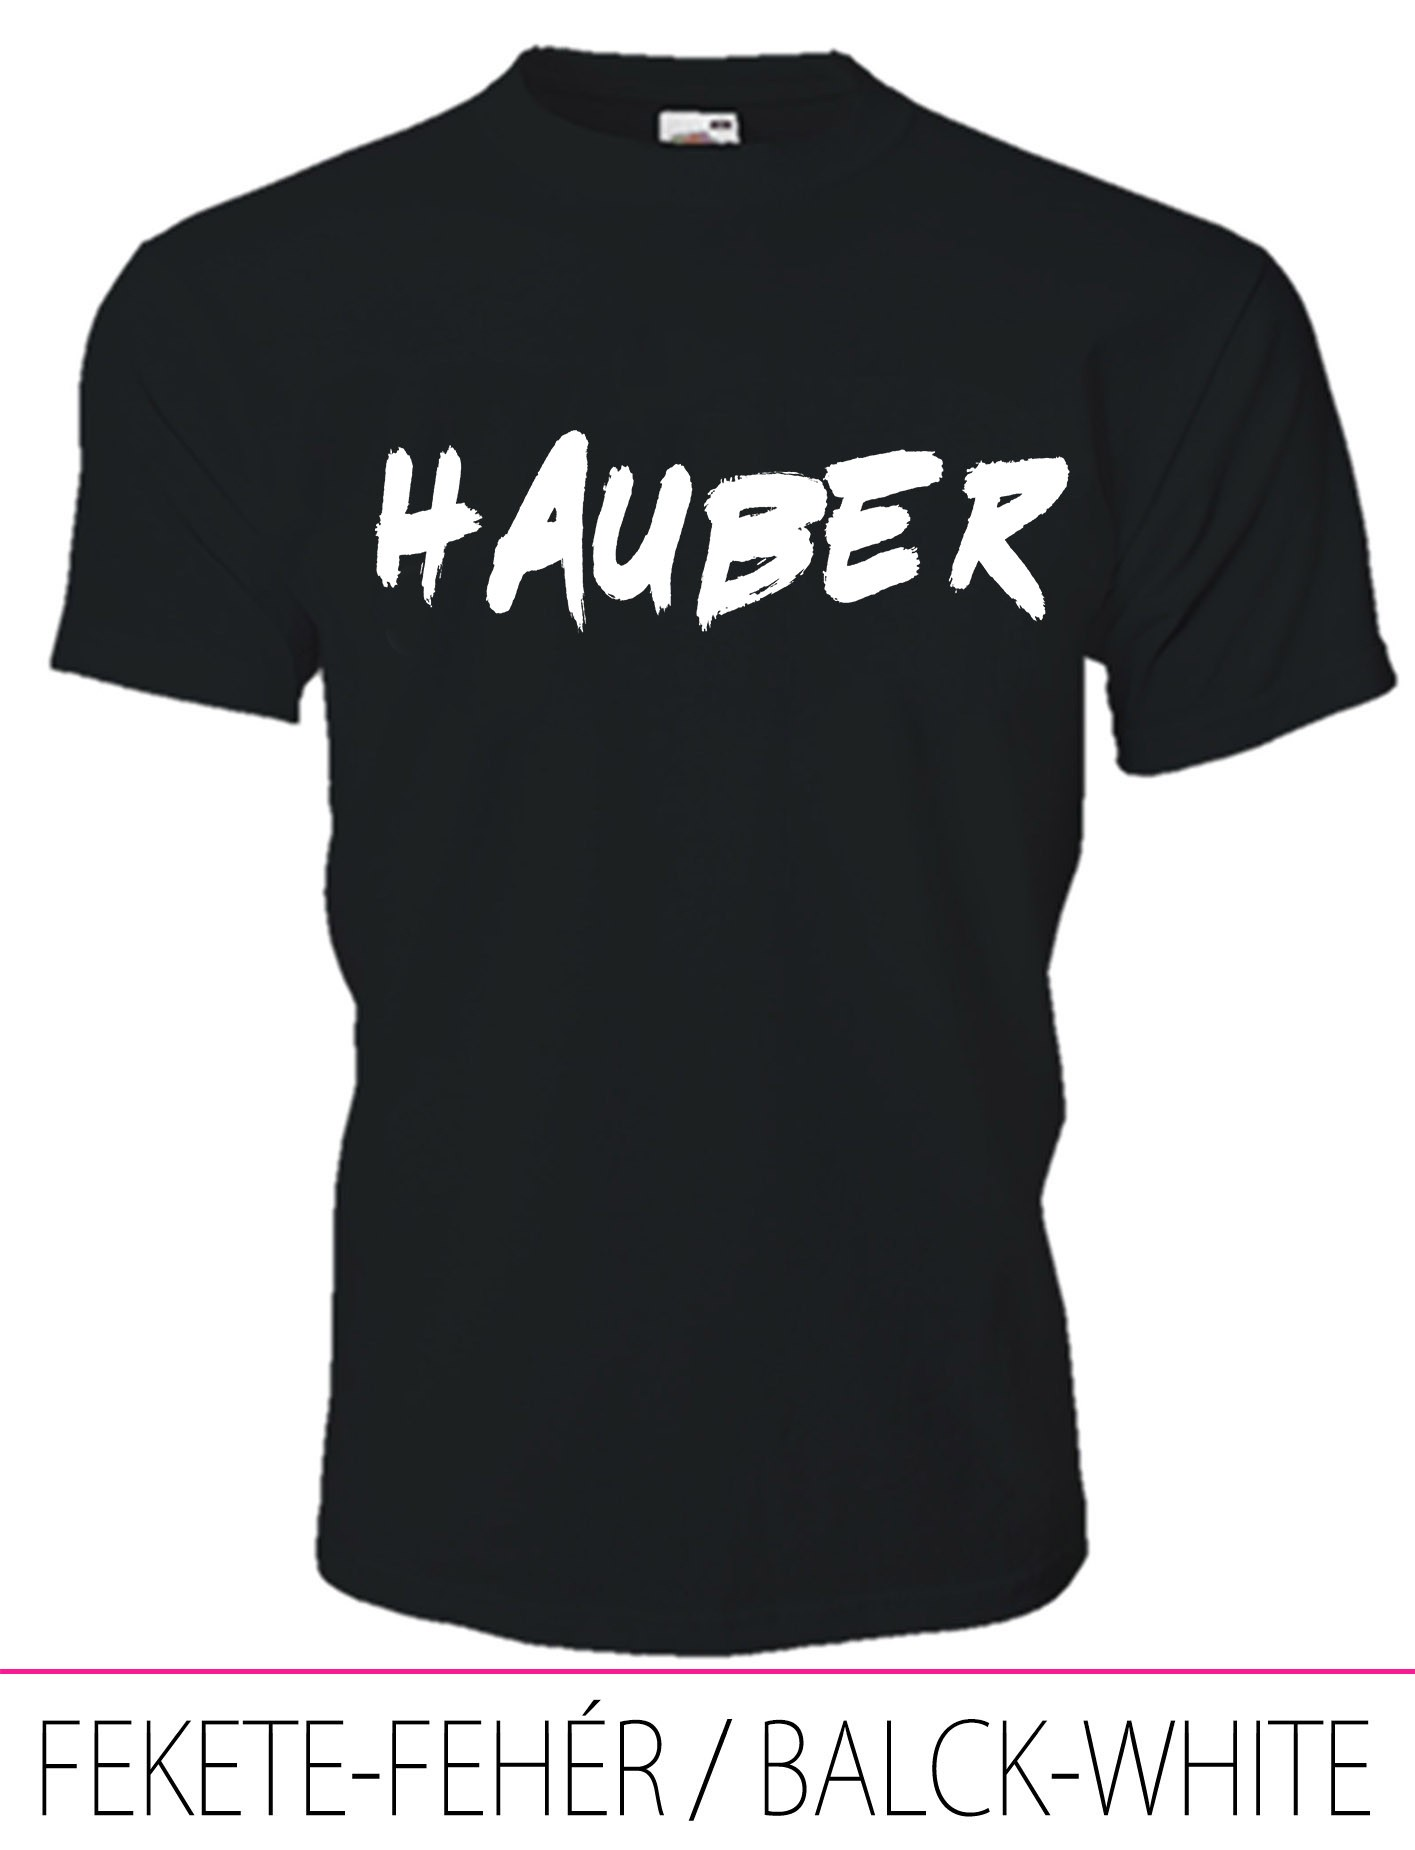 KIDS CREW NECK T-SHIRT HAUBER BLACK-WHITE